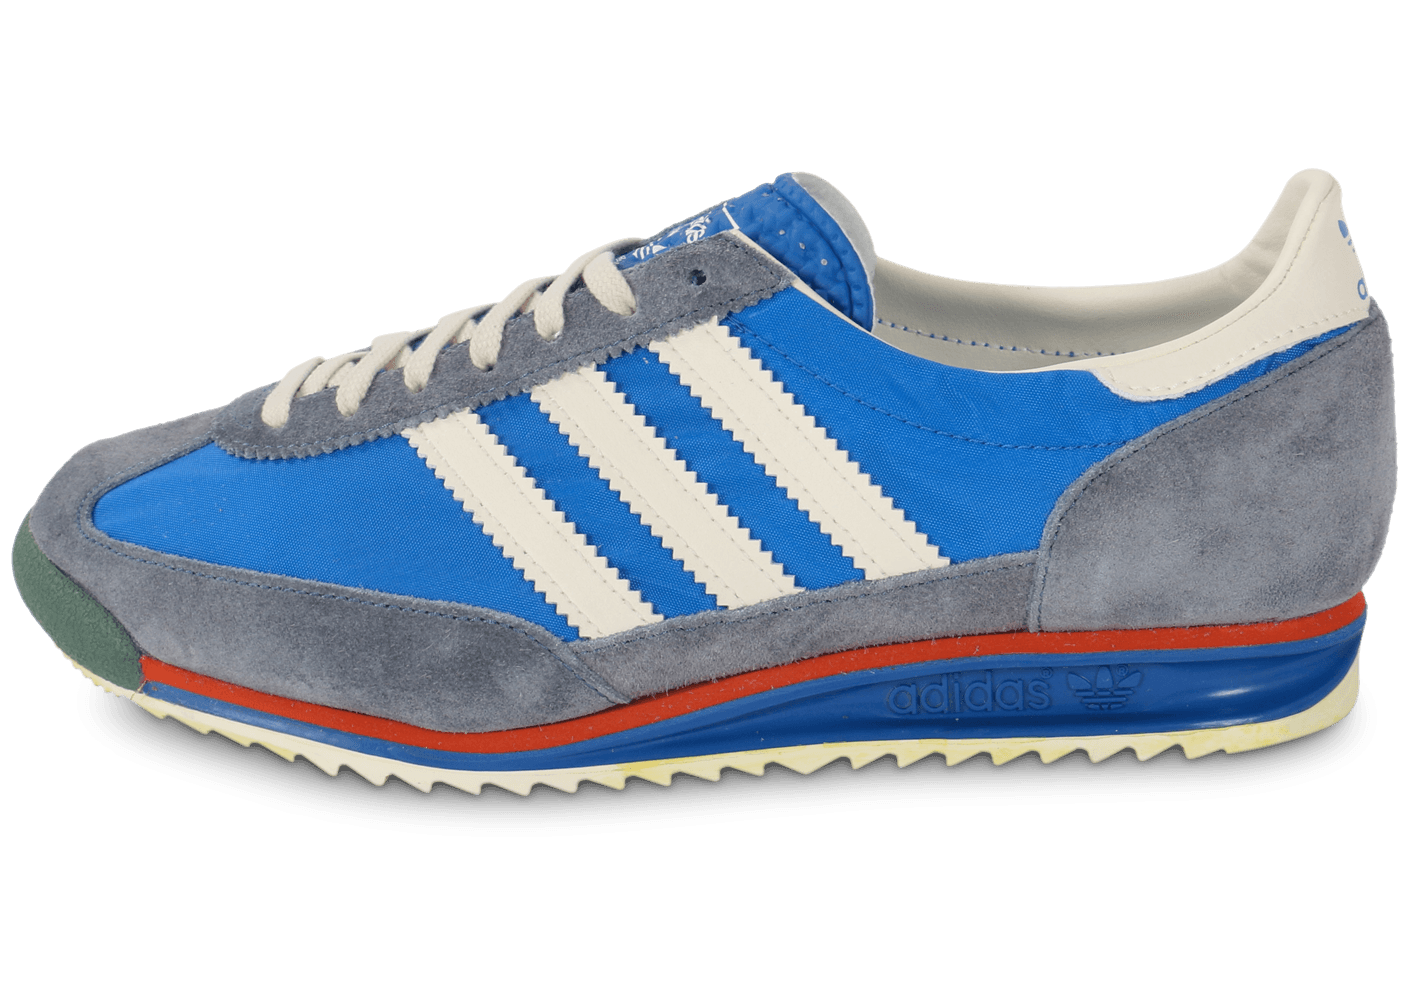 adidas sl 72 vintage bleue chaussures baskets homme chausport. Black Bedroom Furniture Sets. Home Design Ideas